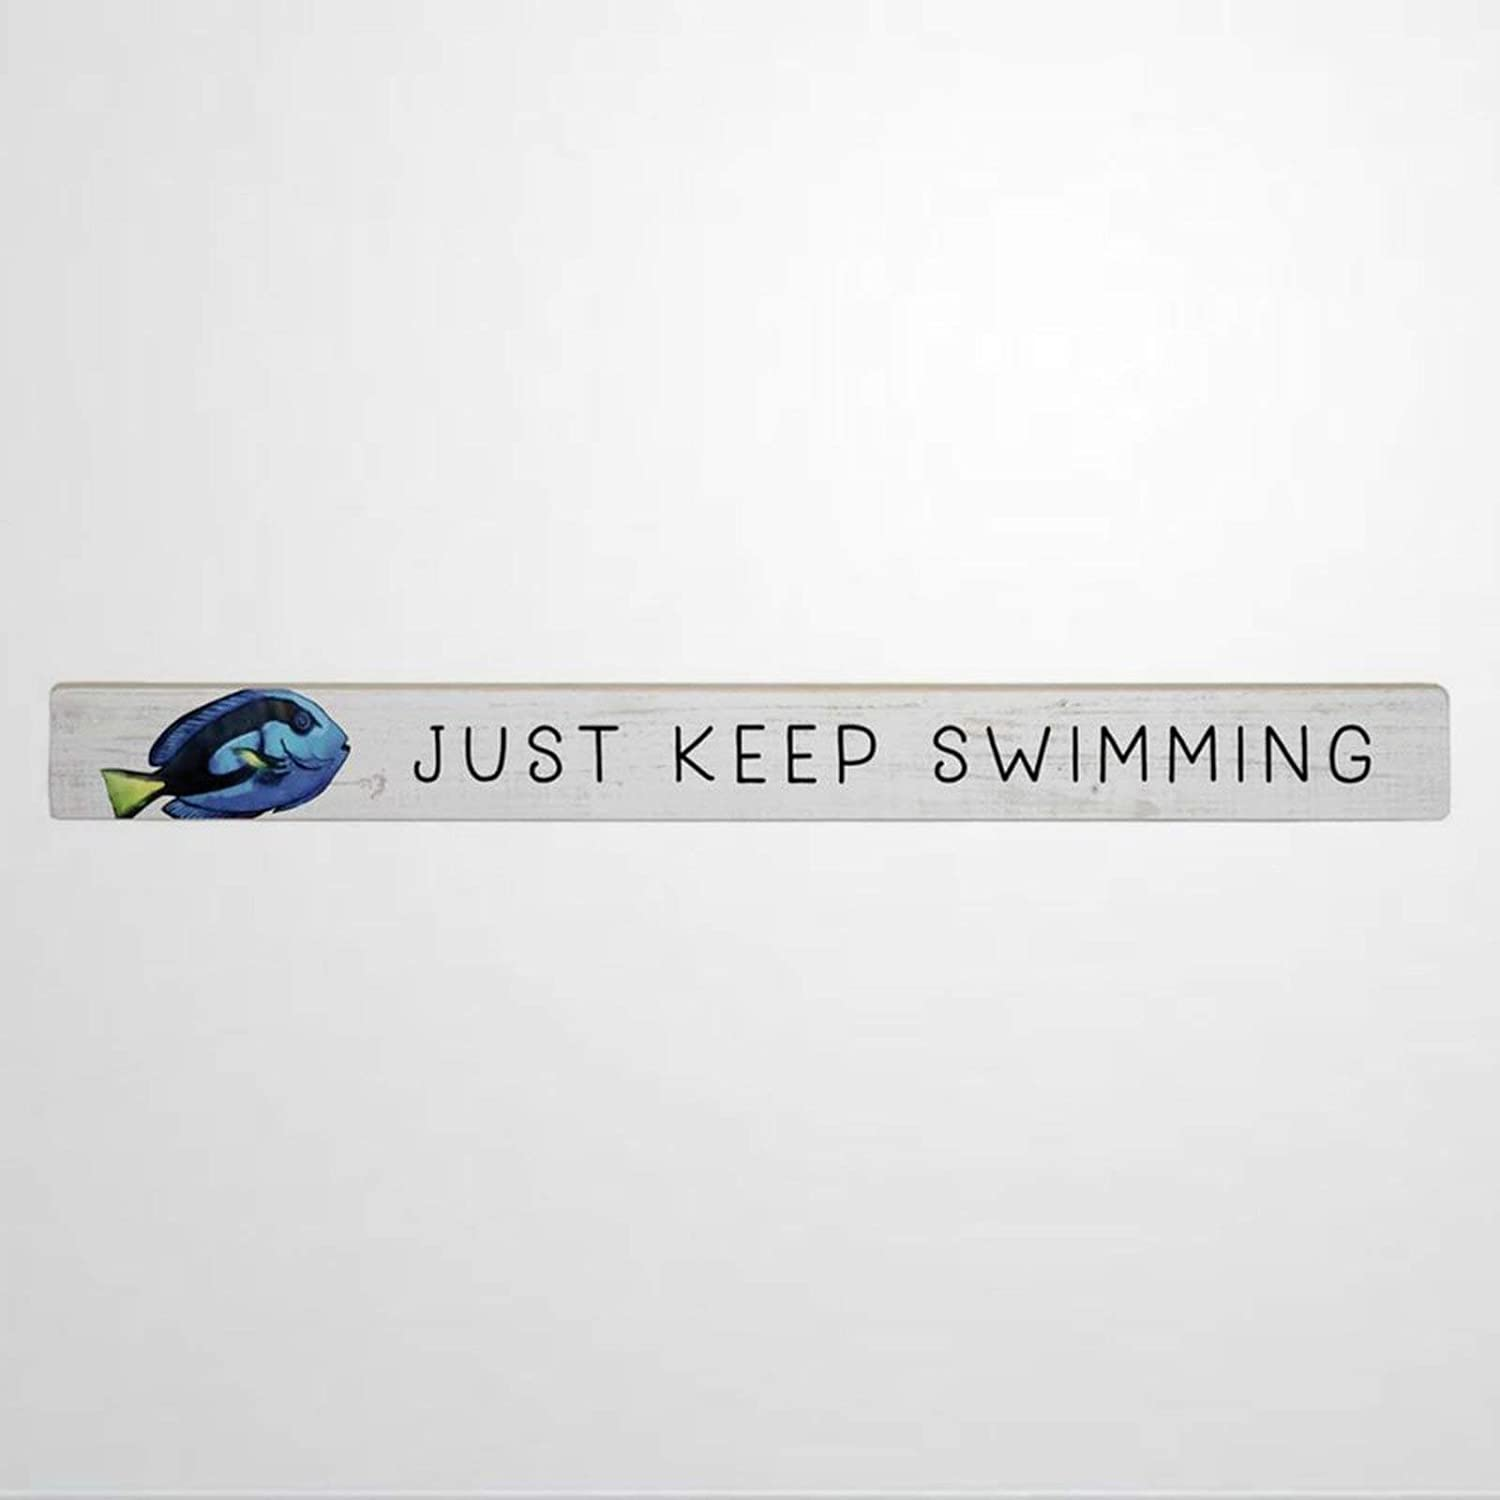 43LenaJon Just Keep Swimming Shelf Sitter Cute Funny Wood Wall Decor Sign,Custom Wood Sign,Wooden Plaque Art for Easter, Father's Day,Mother's Day,Home,Gardens.